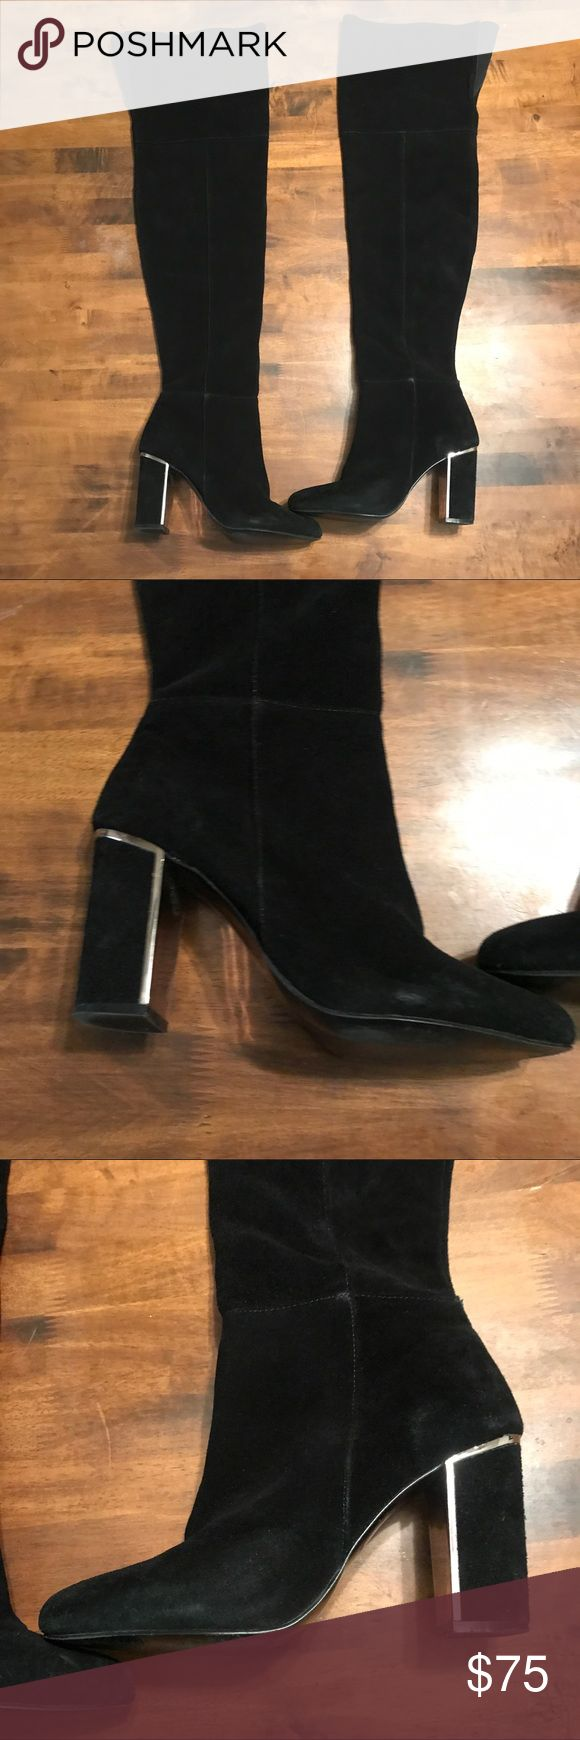 Aldo thigh high boots Black suede thigh high boots with gold trims on heel. Size 8.5 Aldo Shoes Over the Knee Boots